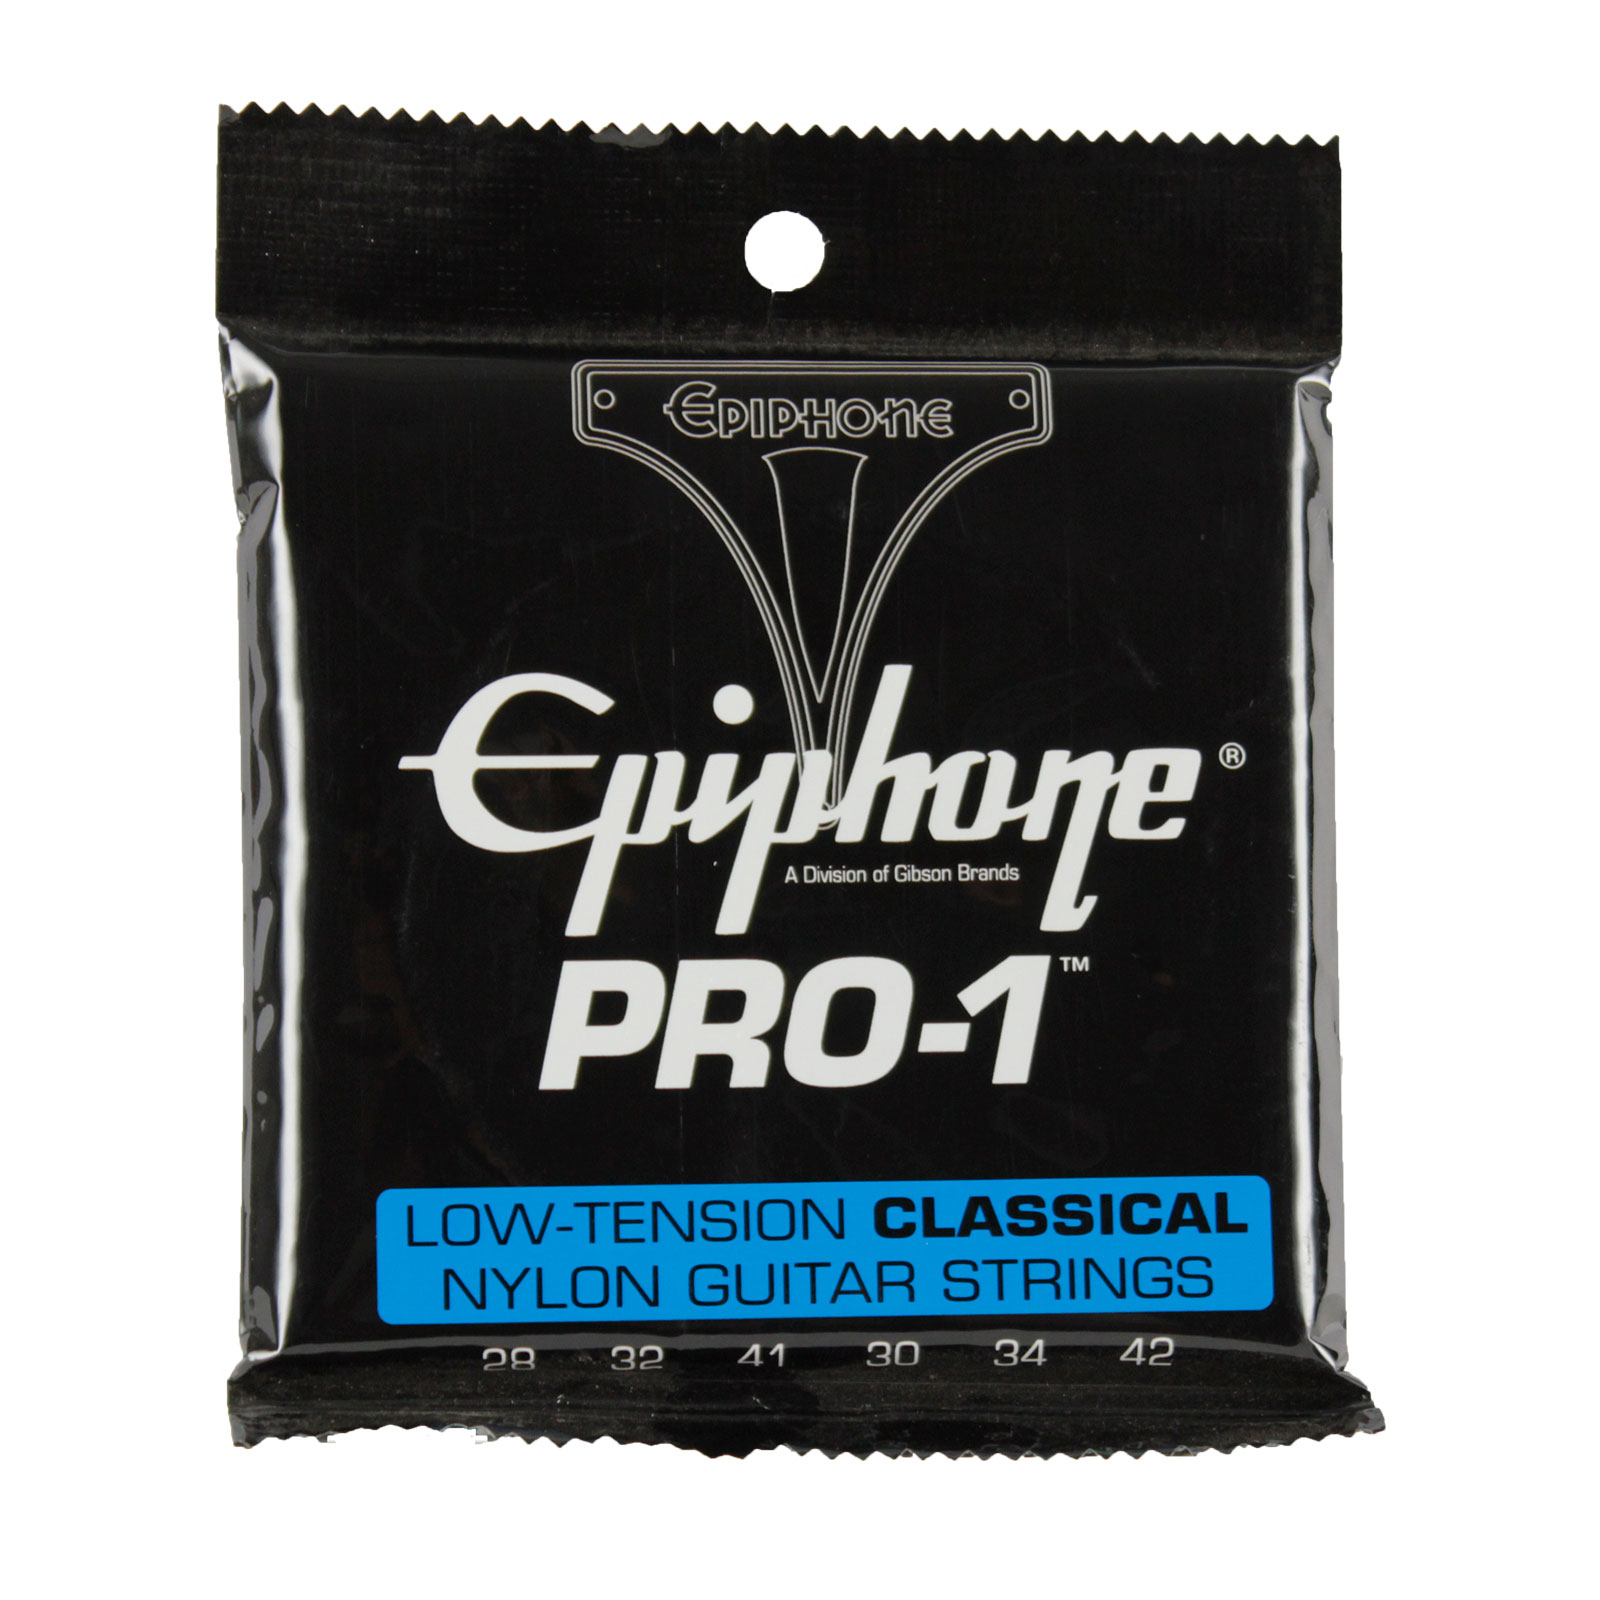 Epiphone Epiphone Pro-1 Classical Strings